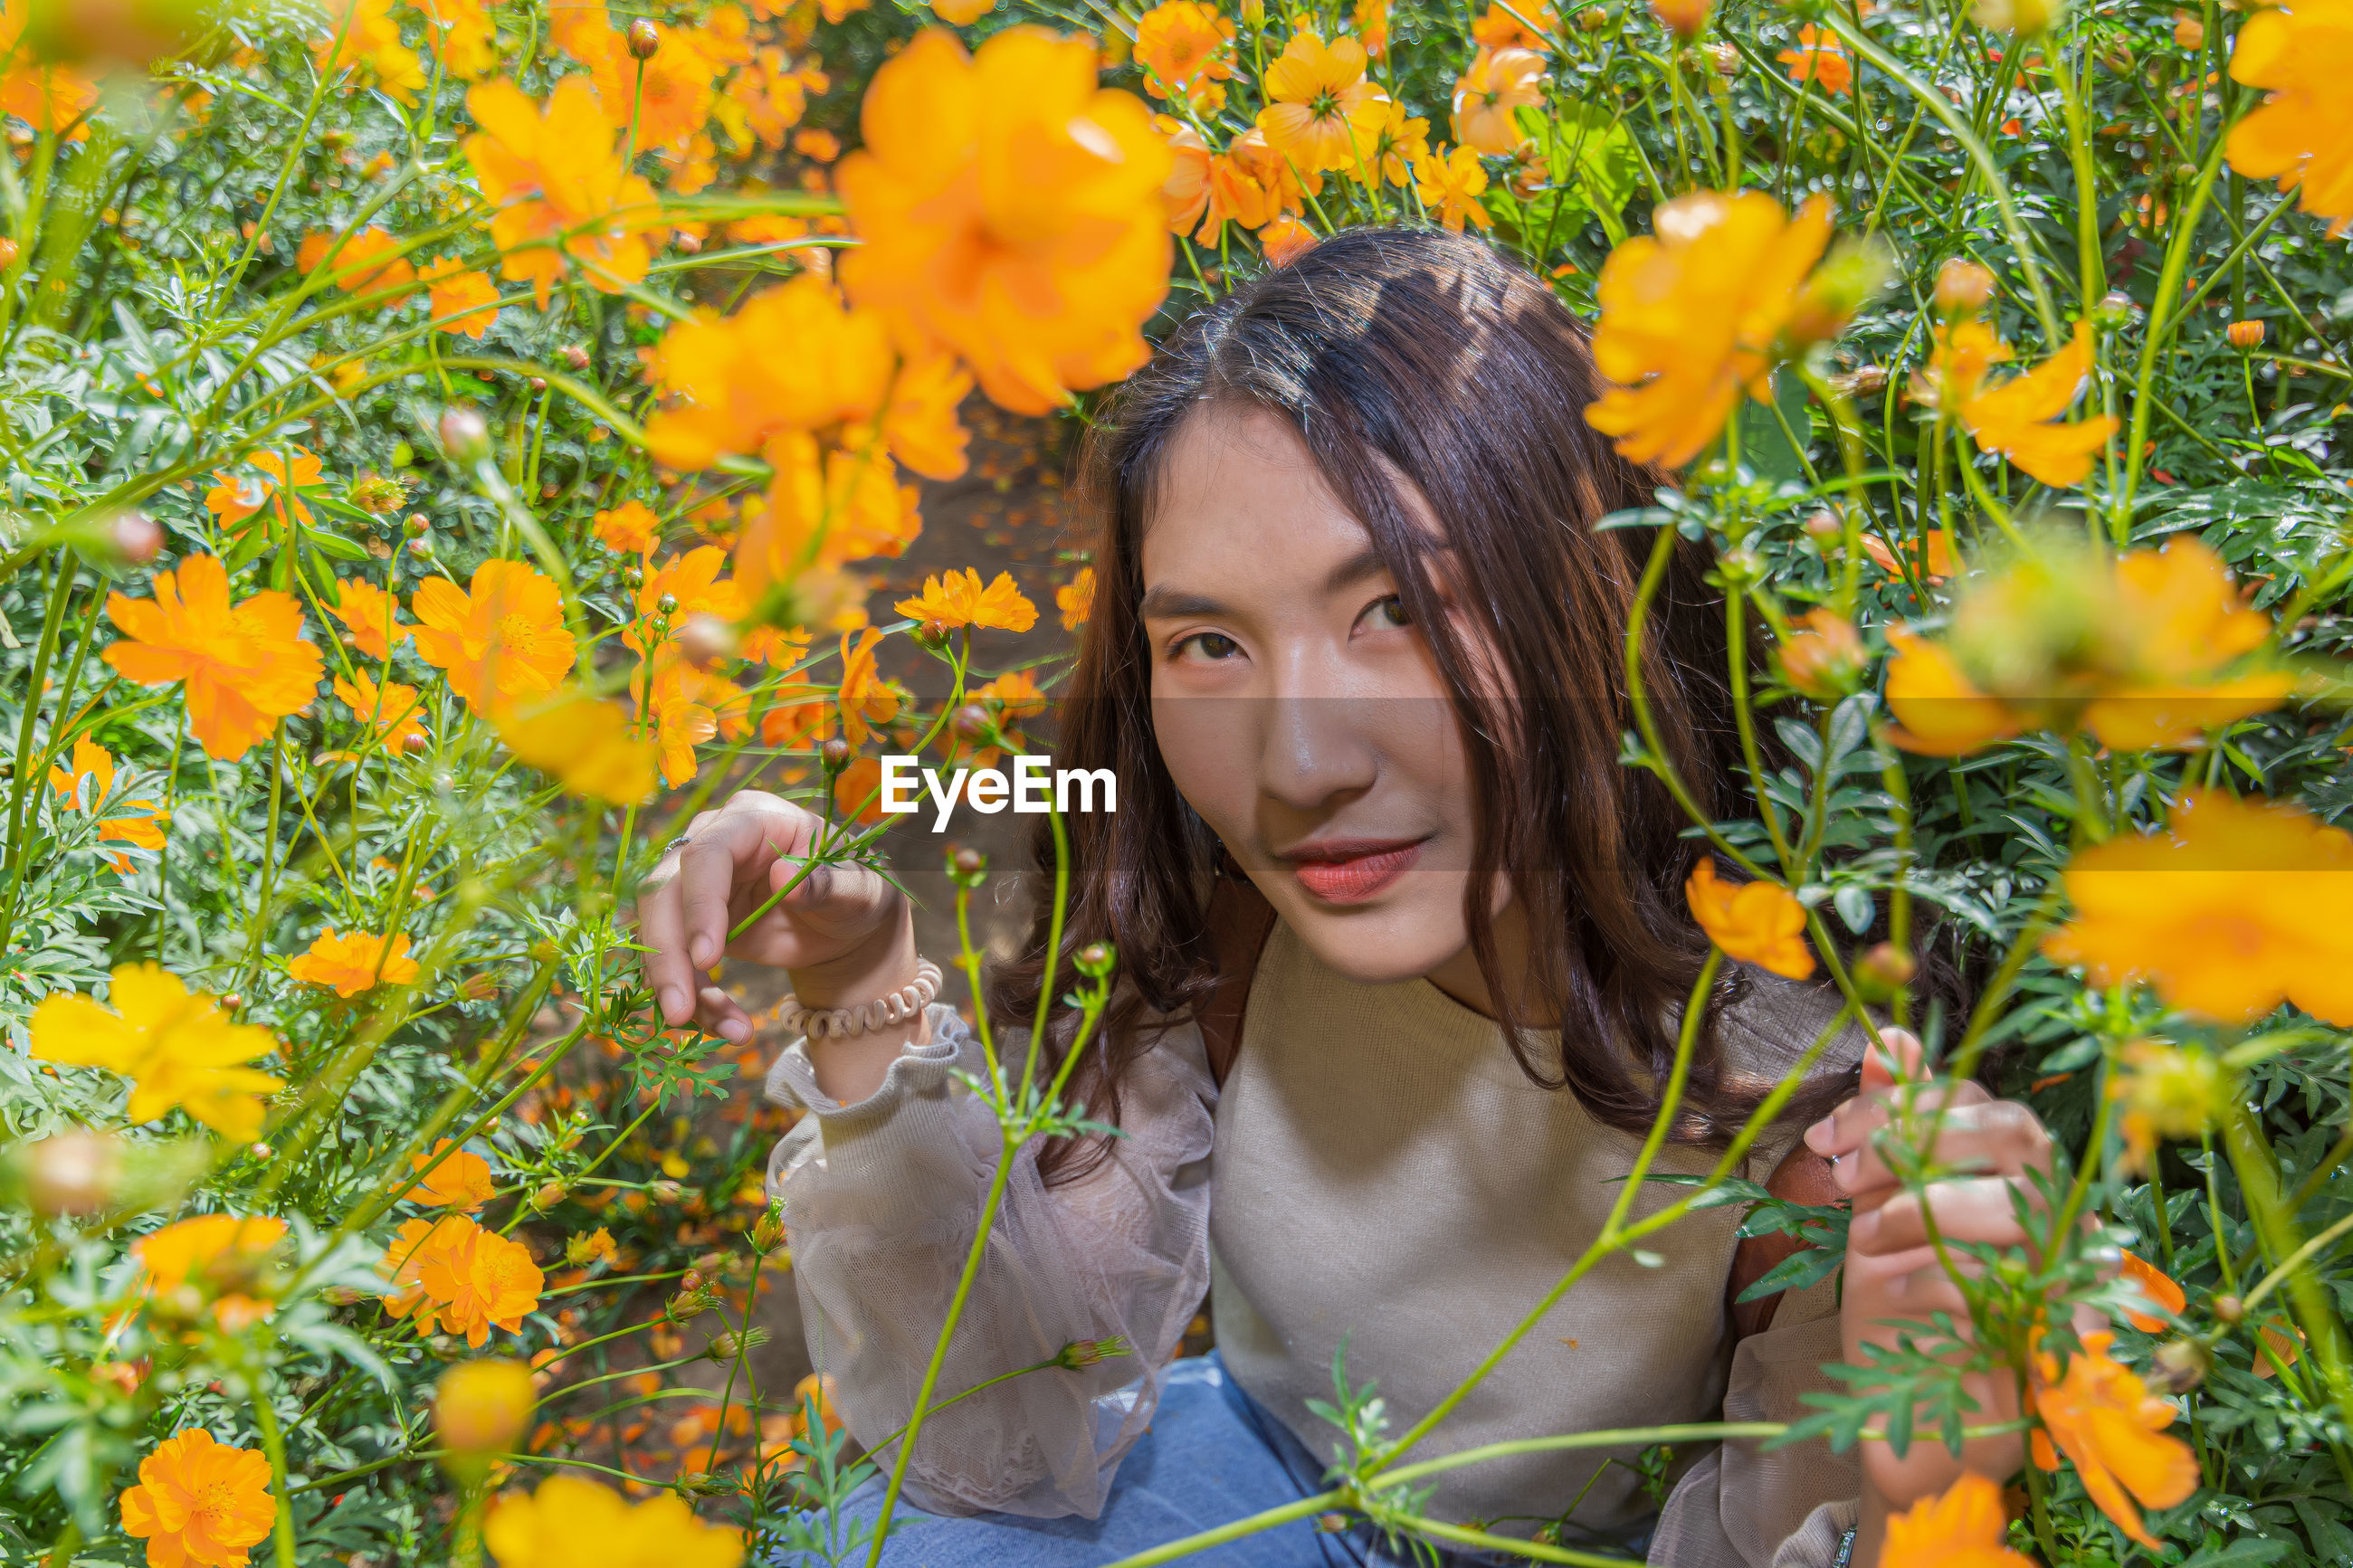 Portrait of woman crouching on land by yellow flowering plants